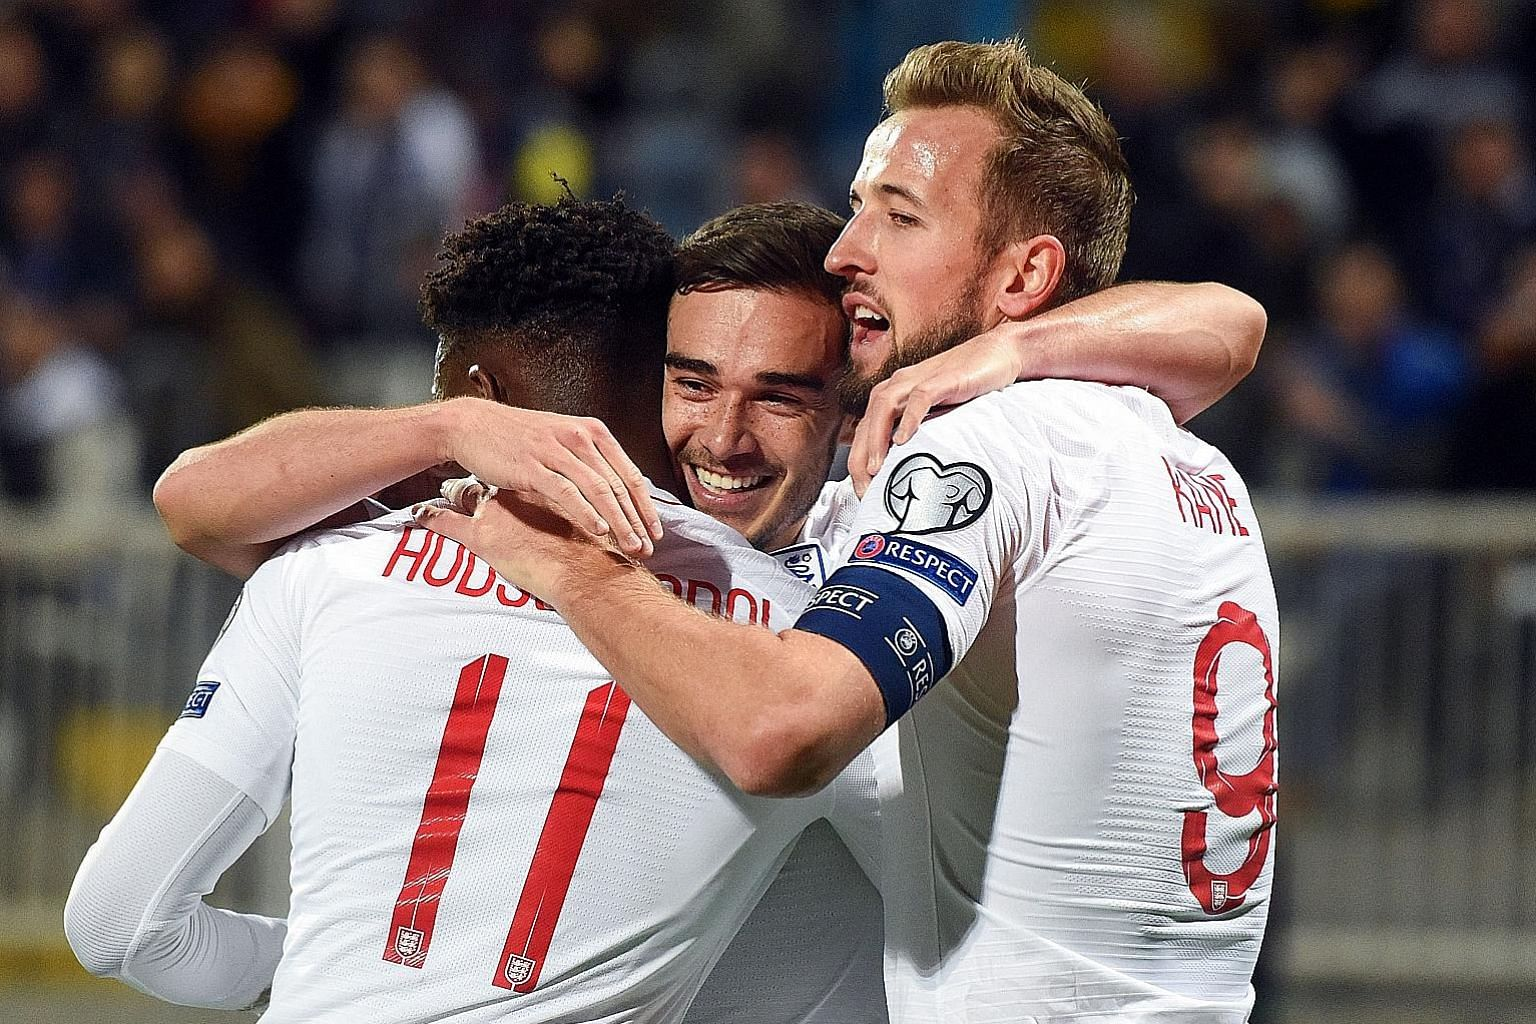 Harry Winks celebrating with Callum Hudson-Odoi and captain Harry Kane after opening accounts for England against Kosovo in Pristina. The Three Lions won 4-0 to complete their Euro 2020 qualifiers with seven wins and one loss - to the Czech Republic.